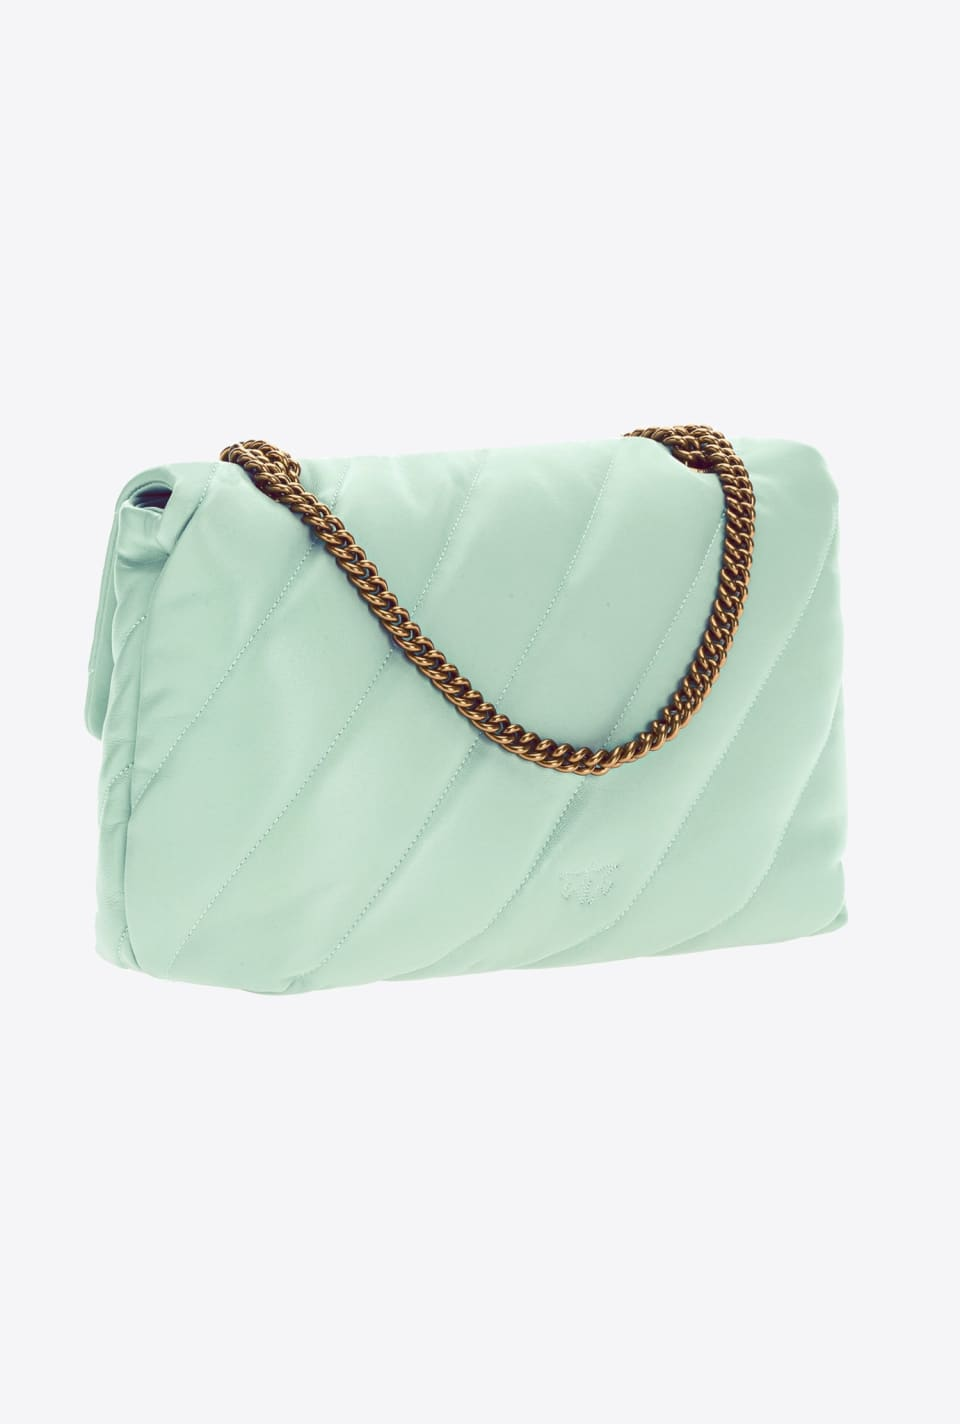 Big Love Bag Puff Maxi Quilt - Pinko